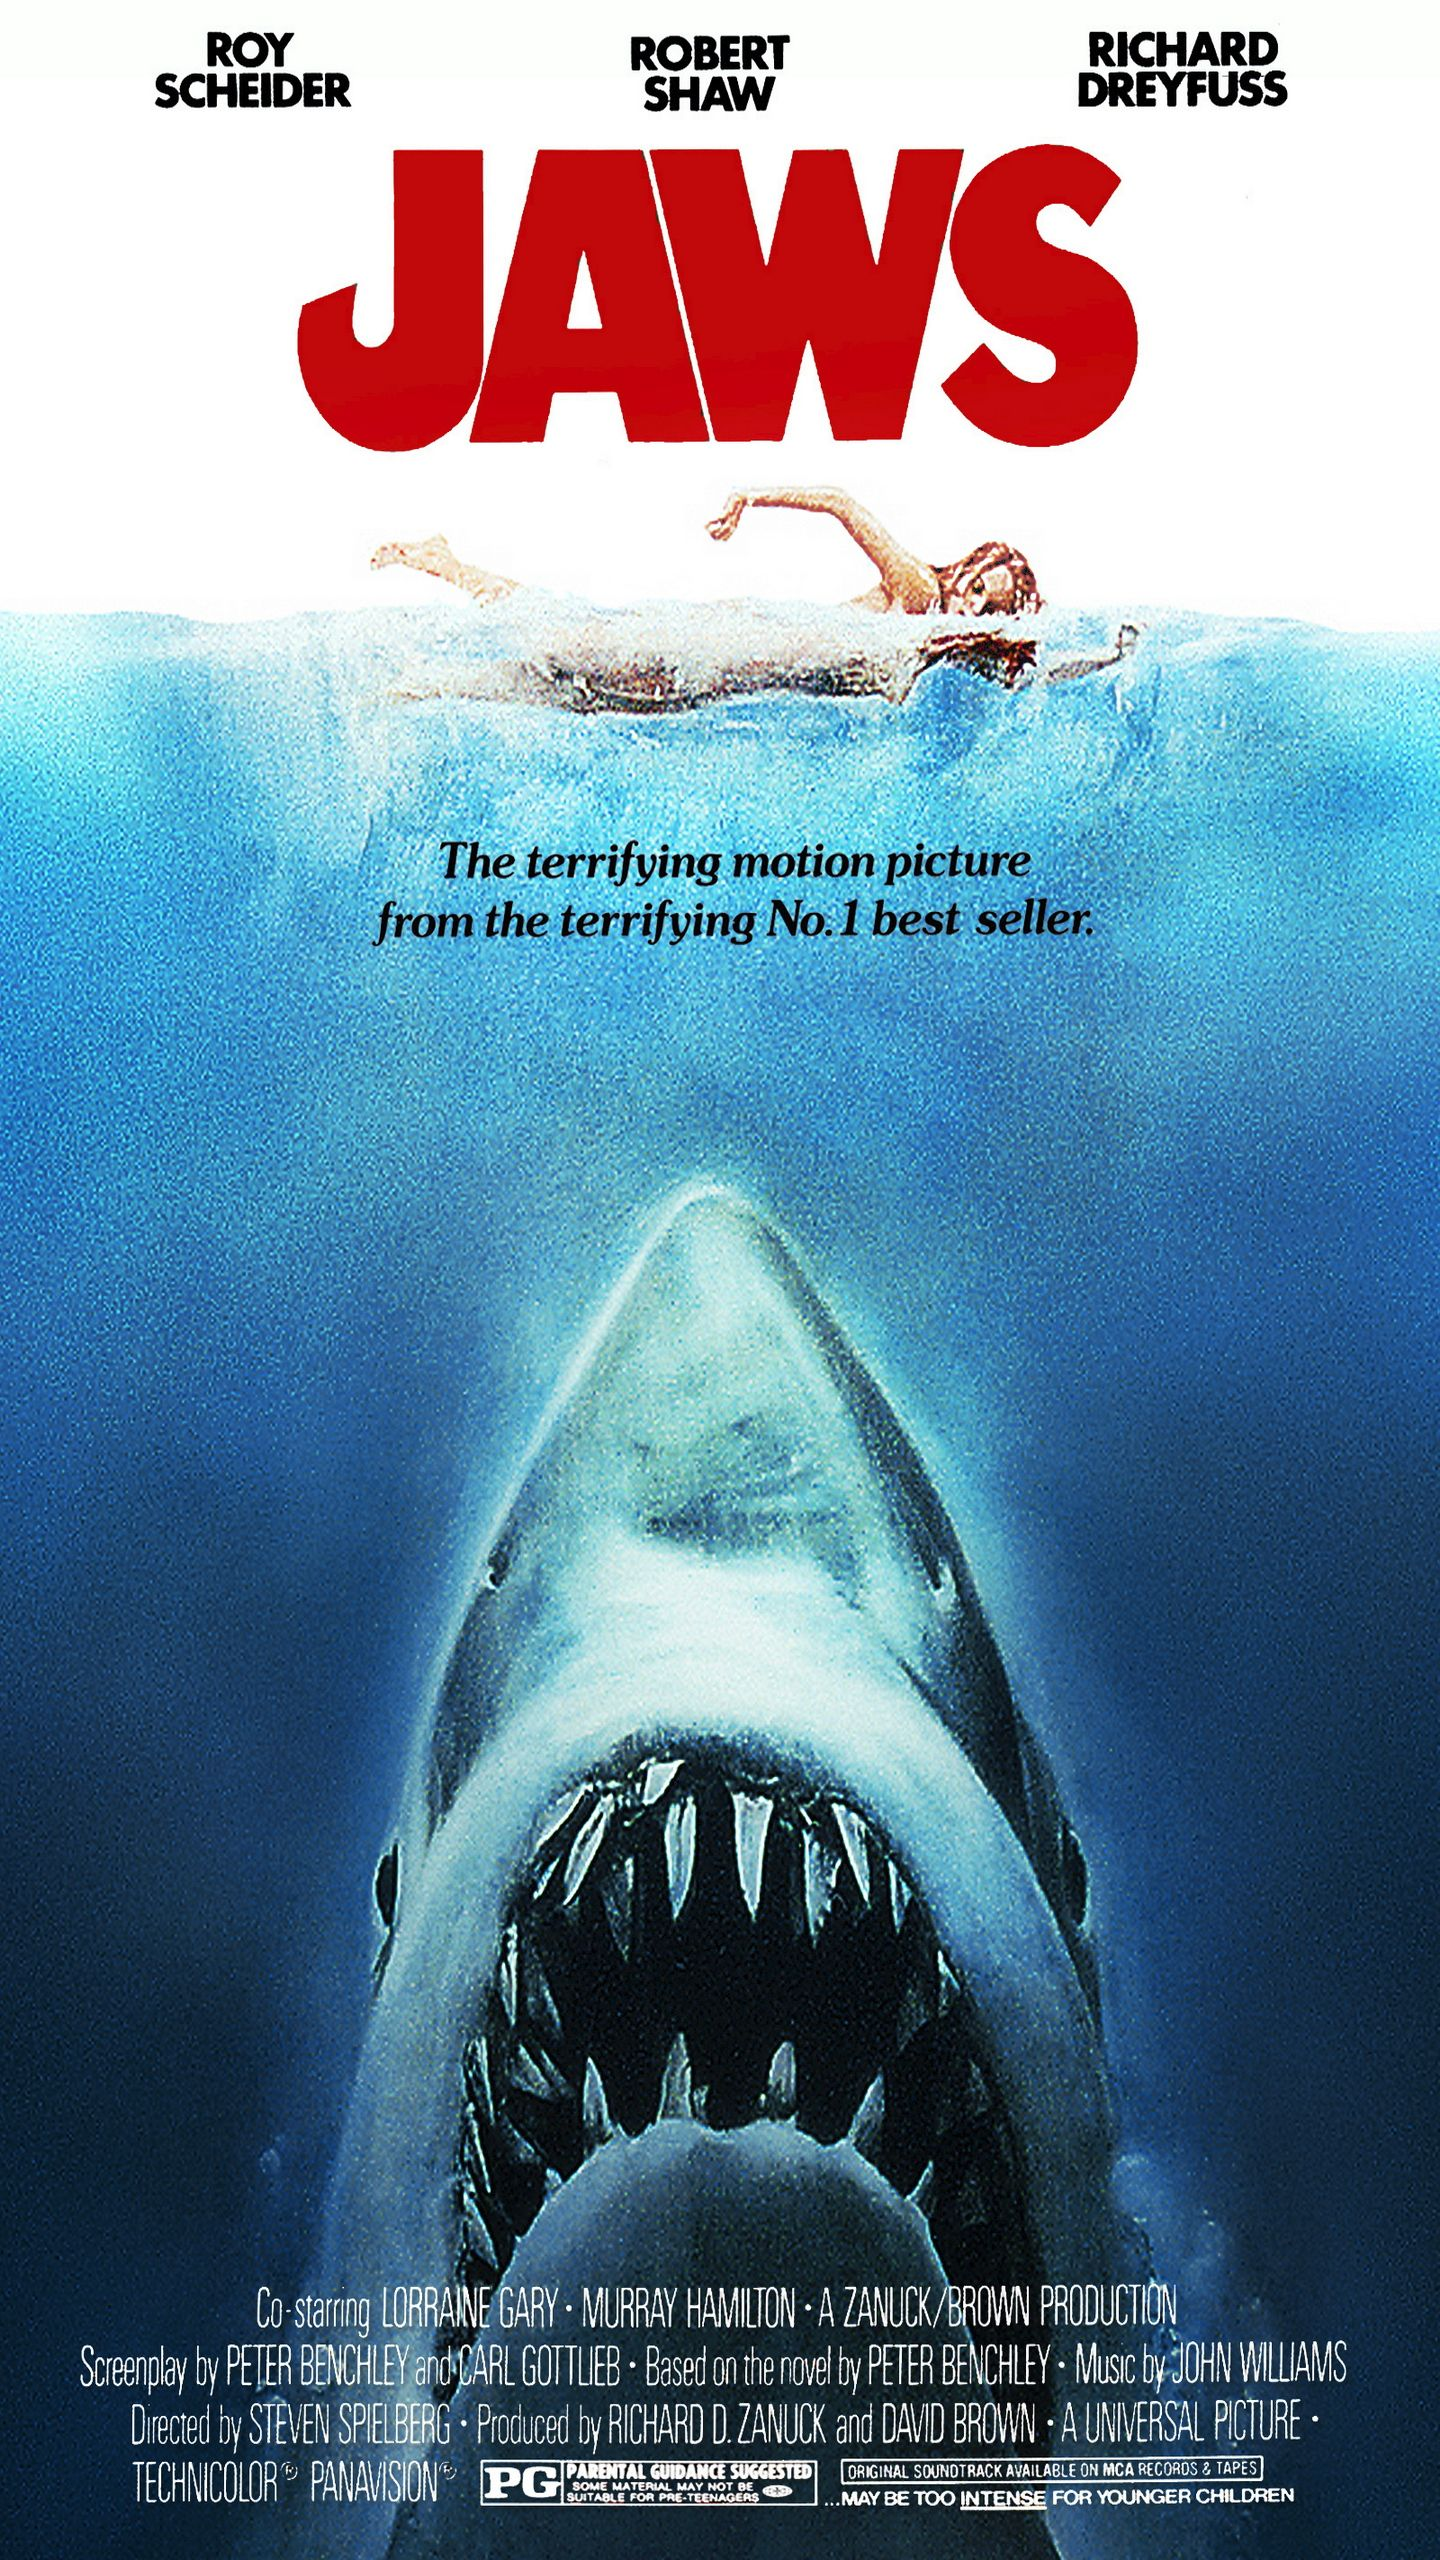 jaws hd wallpaper famous movie